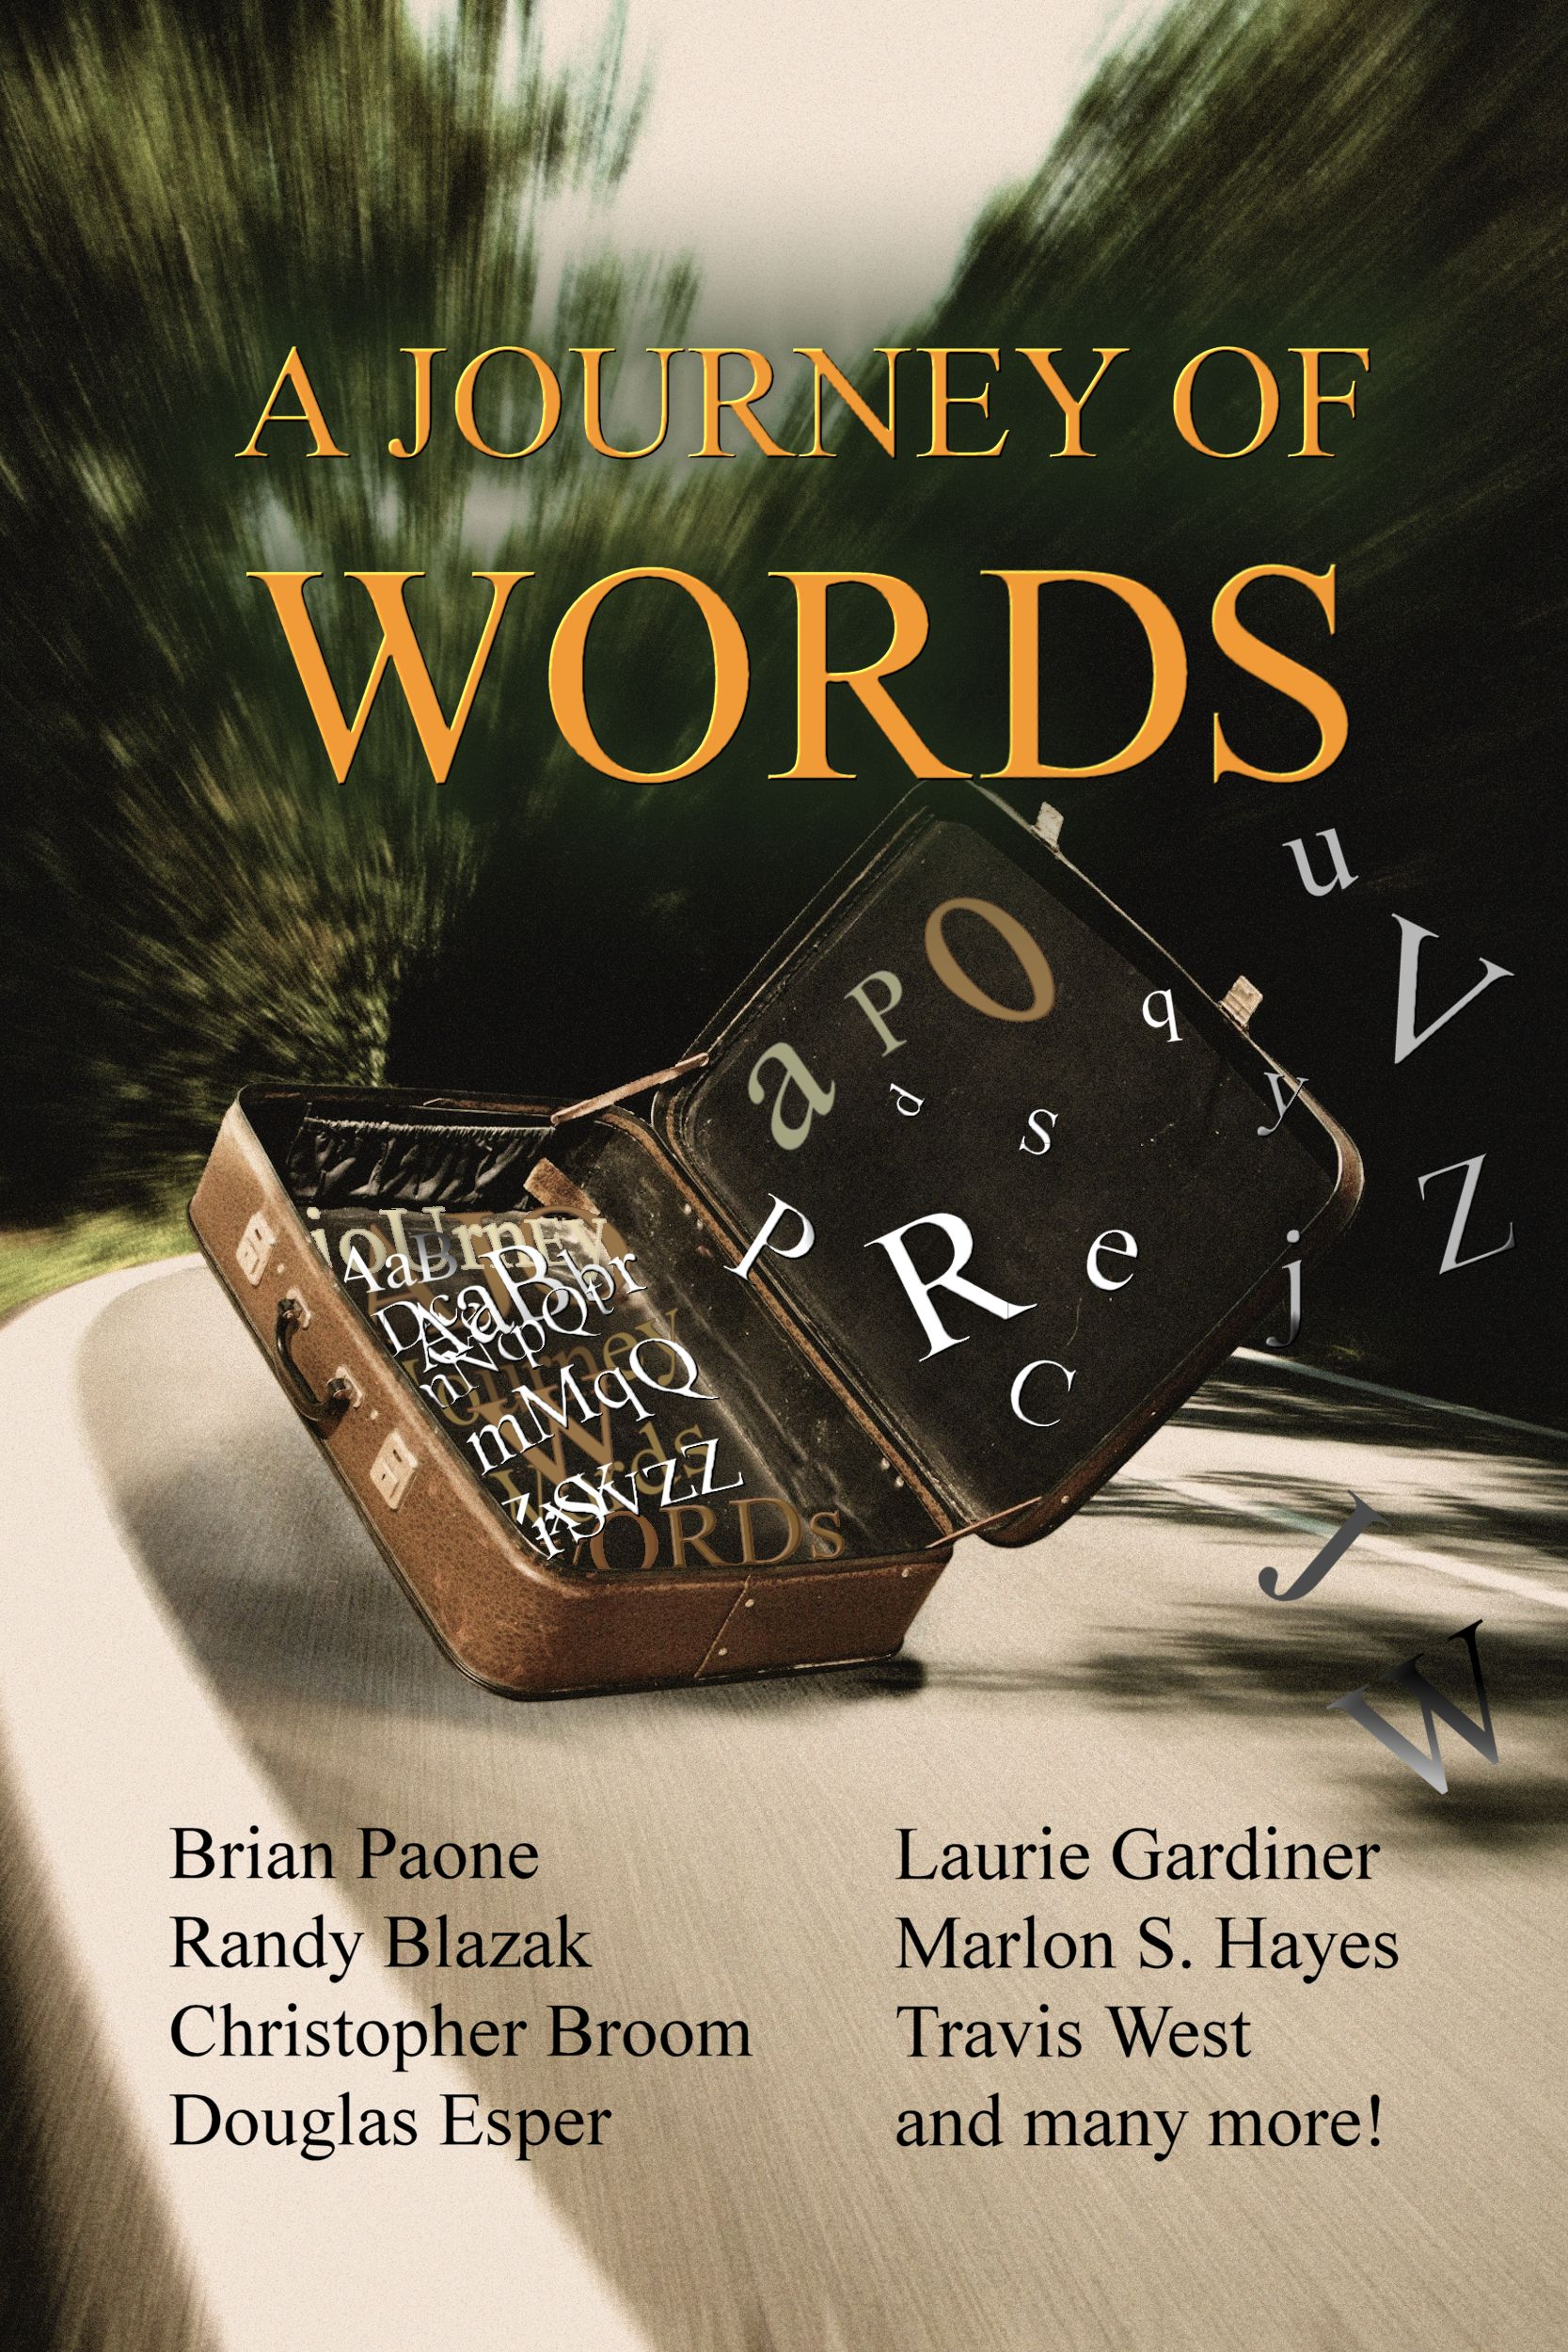 2016's installment,  A Journey of Words , includes 35 authors who wrote short stories centered around a journey or traveling.